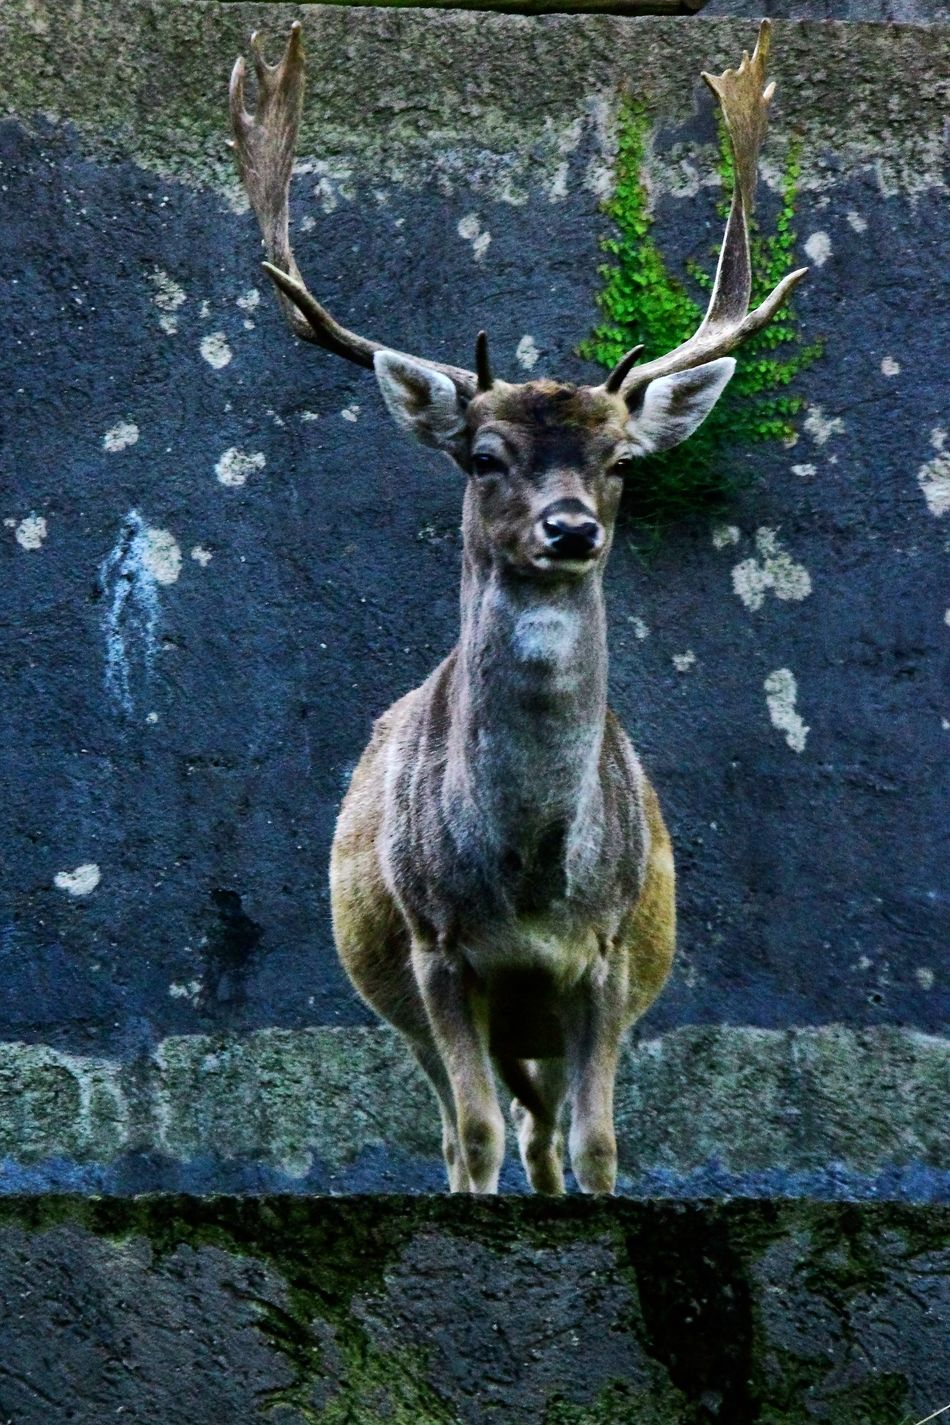 Antlers On The Wall Animal Head  Animal Nose Animal Themes Antlers On Wall Buck Concrete Jungle Concrete Wall Contrasts Day Deer Focus On Foreground Front View Herbivorous Lonelyplanet Look-out Looking Looking At Camera Mammal One Animal Outdoors Portrait Royalty Life  Zoo Zoology Adapted To The City